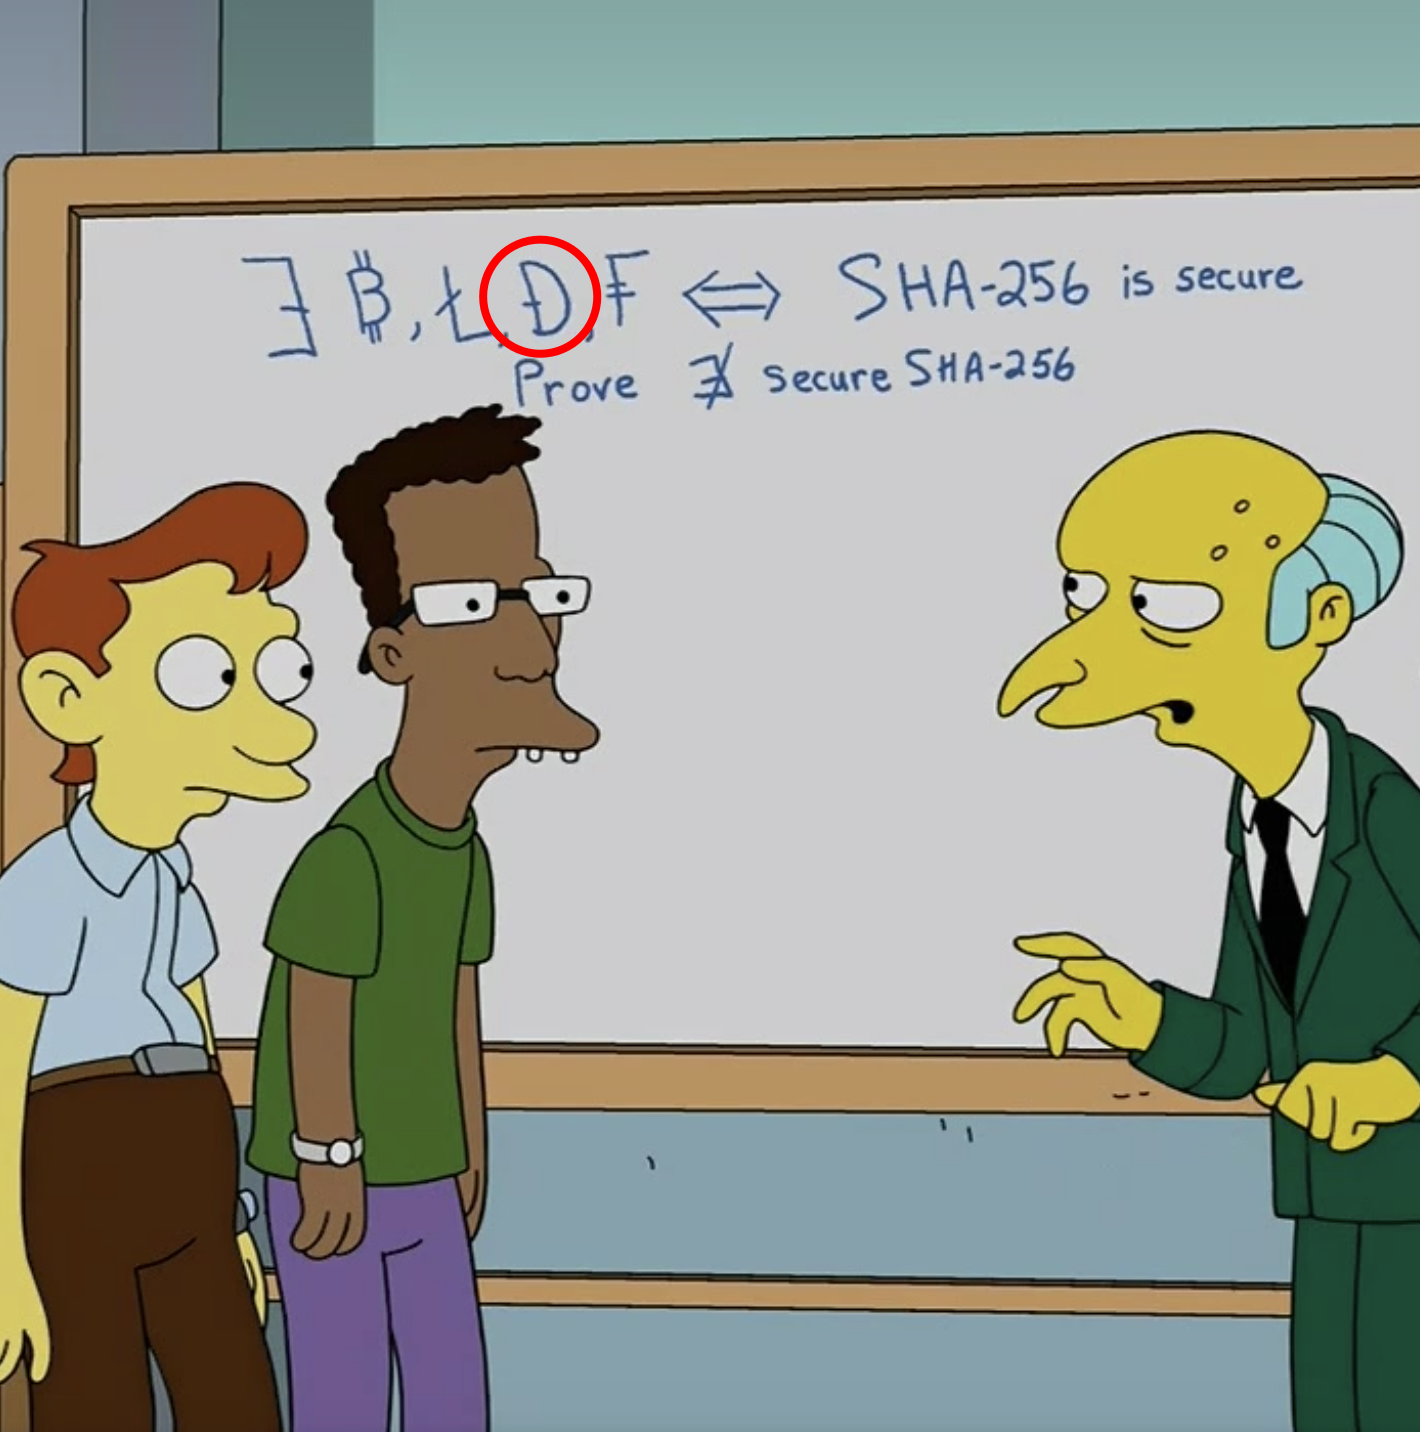 Dogecoin mentioned in The Simpsons!